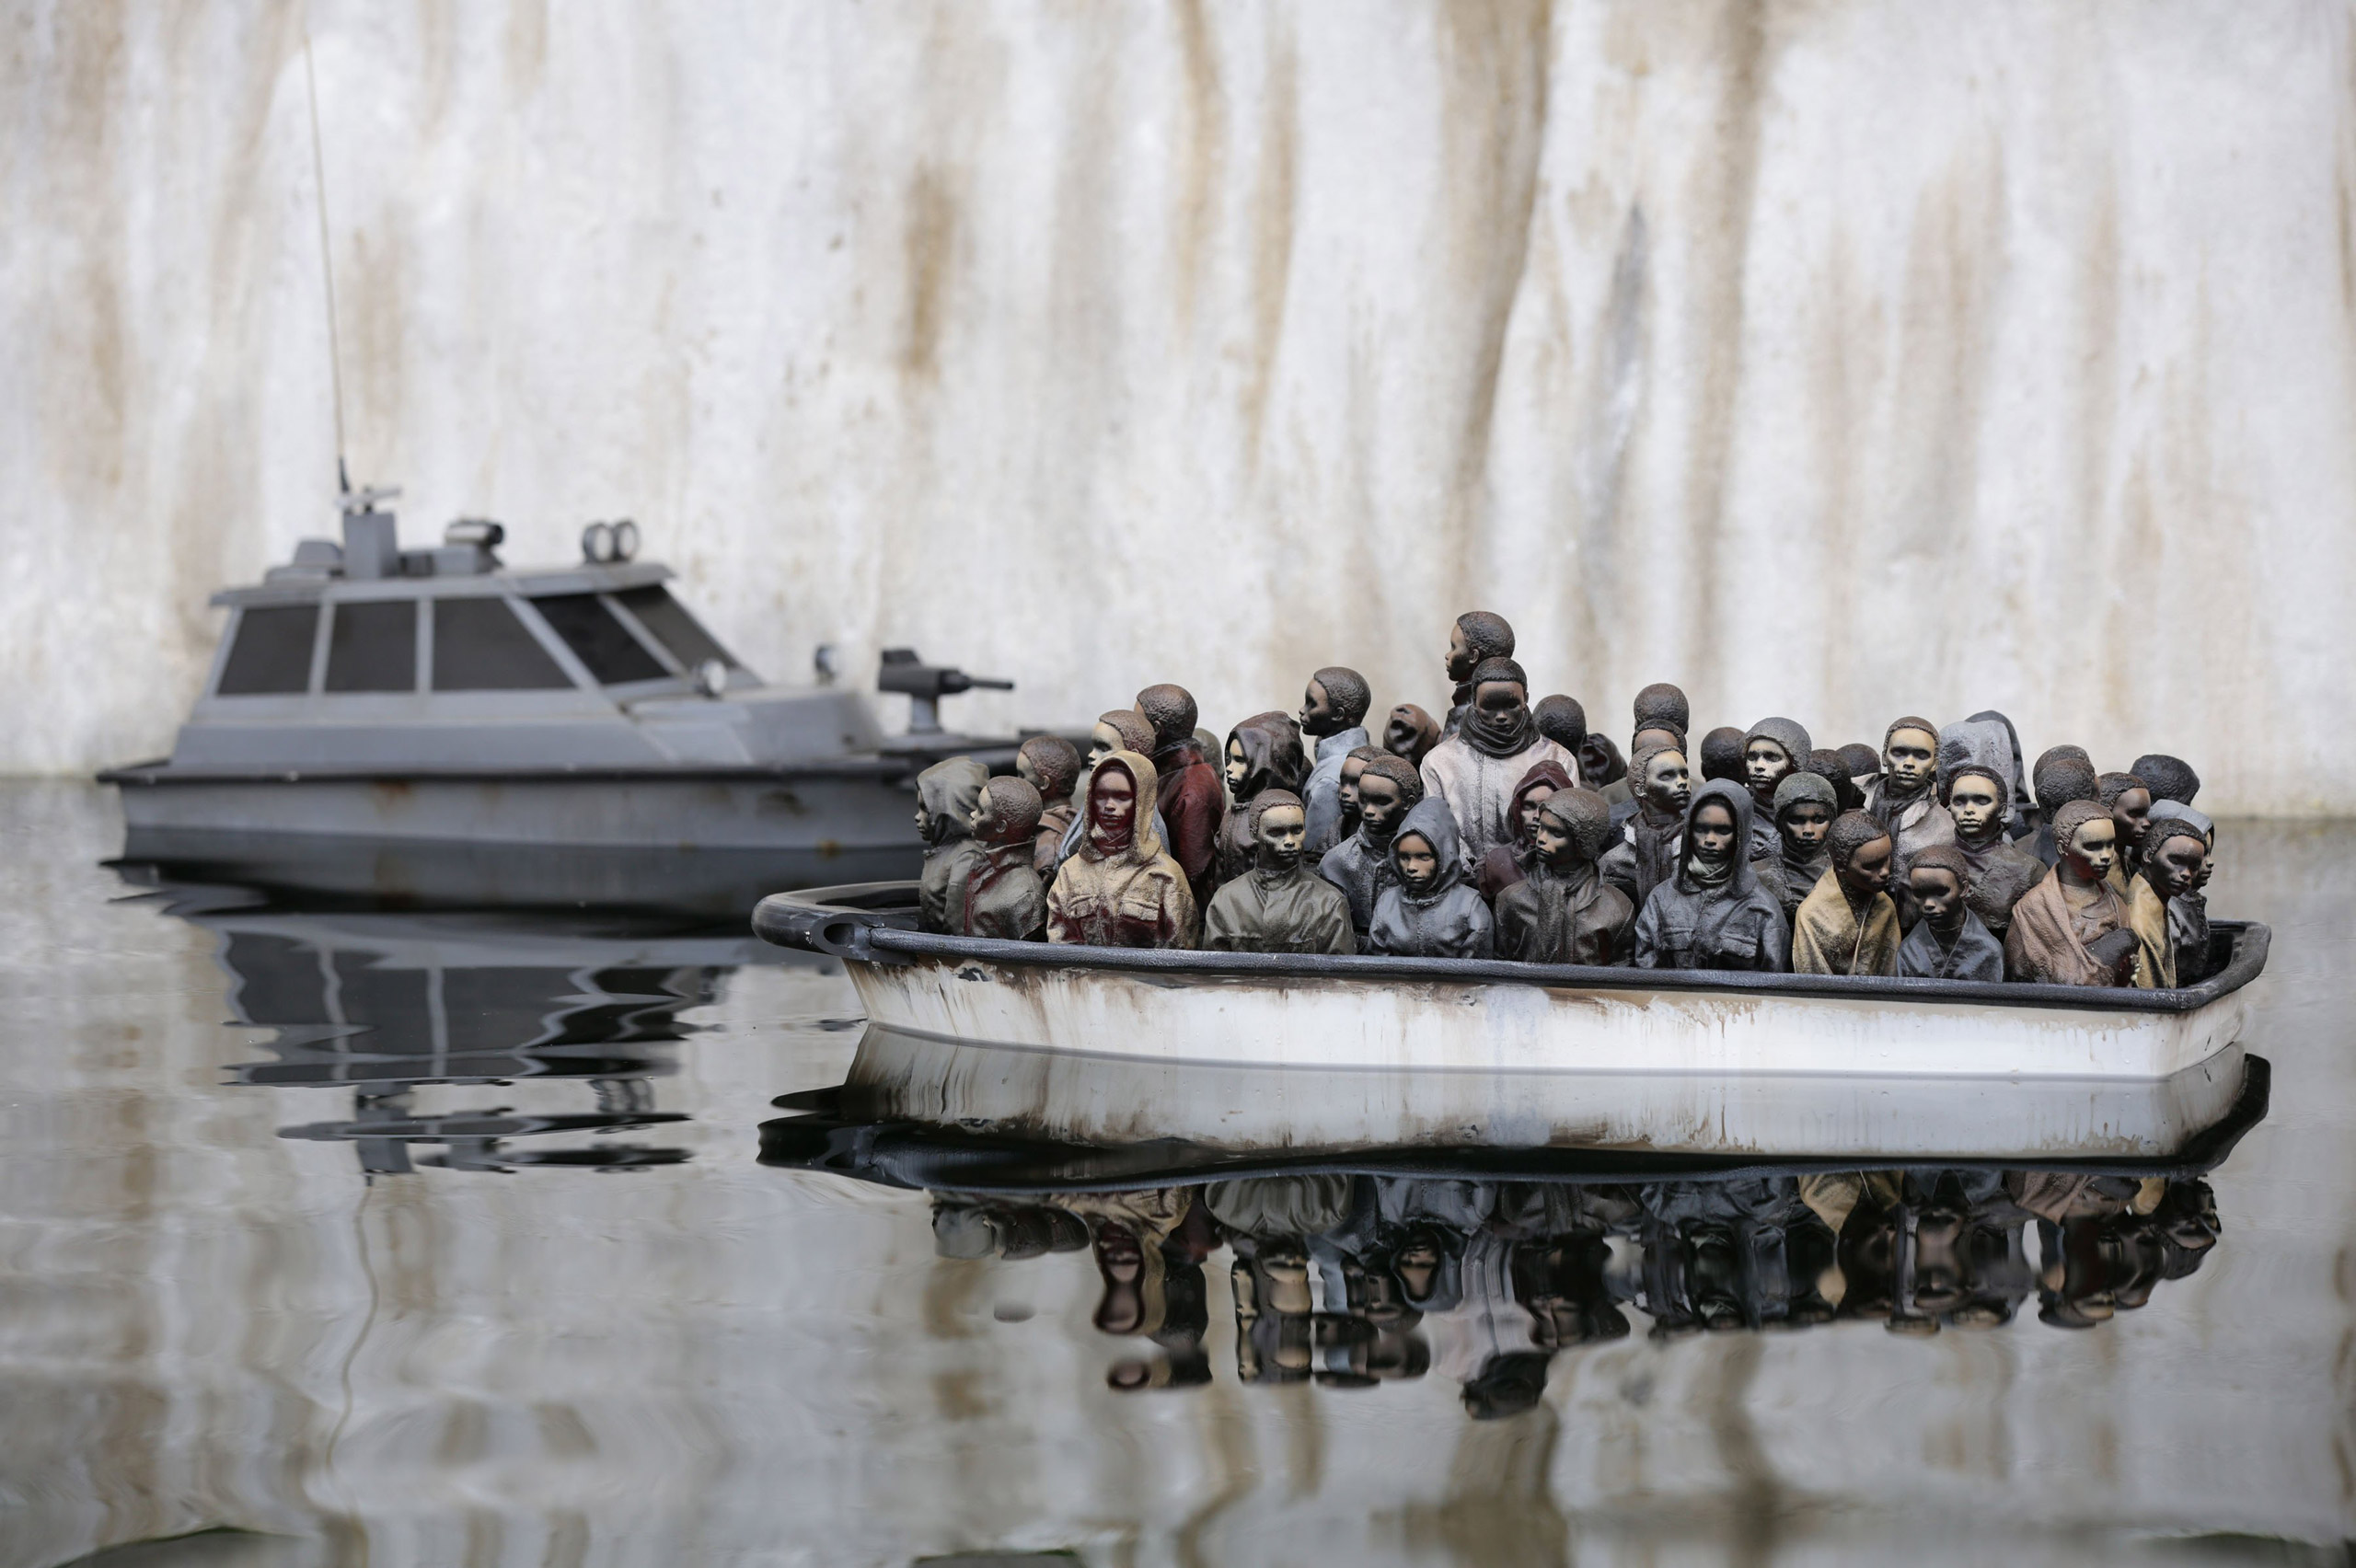 A sculpture that appears to reference the migrant crisis by Banksy.